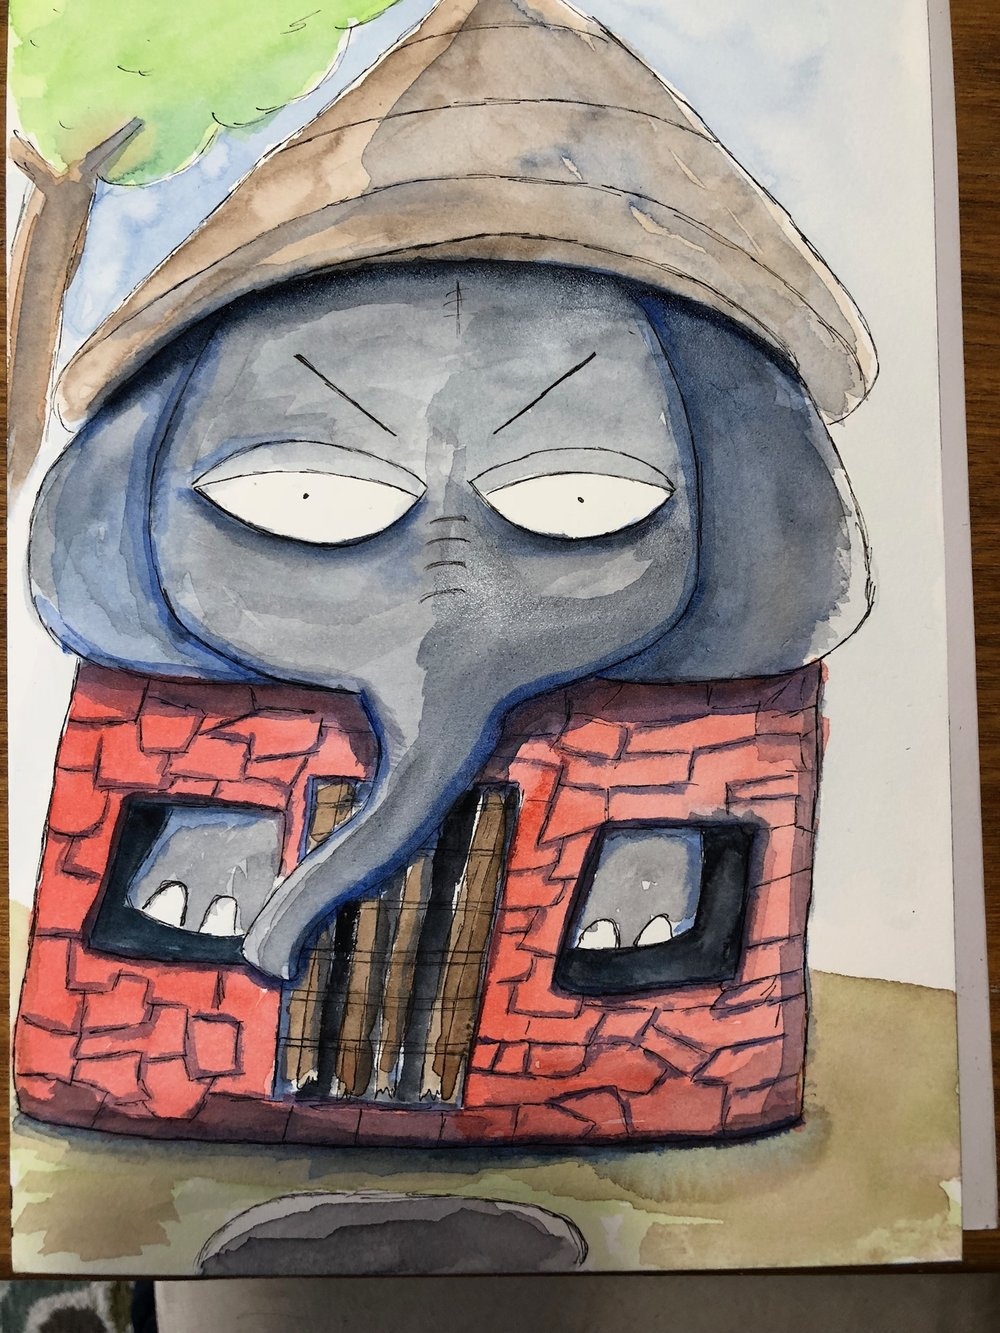 Igor the Elephant is grumpy. And he is too big for his house so he sometimes wears his roof as a hat.